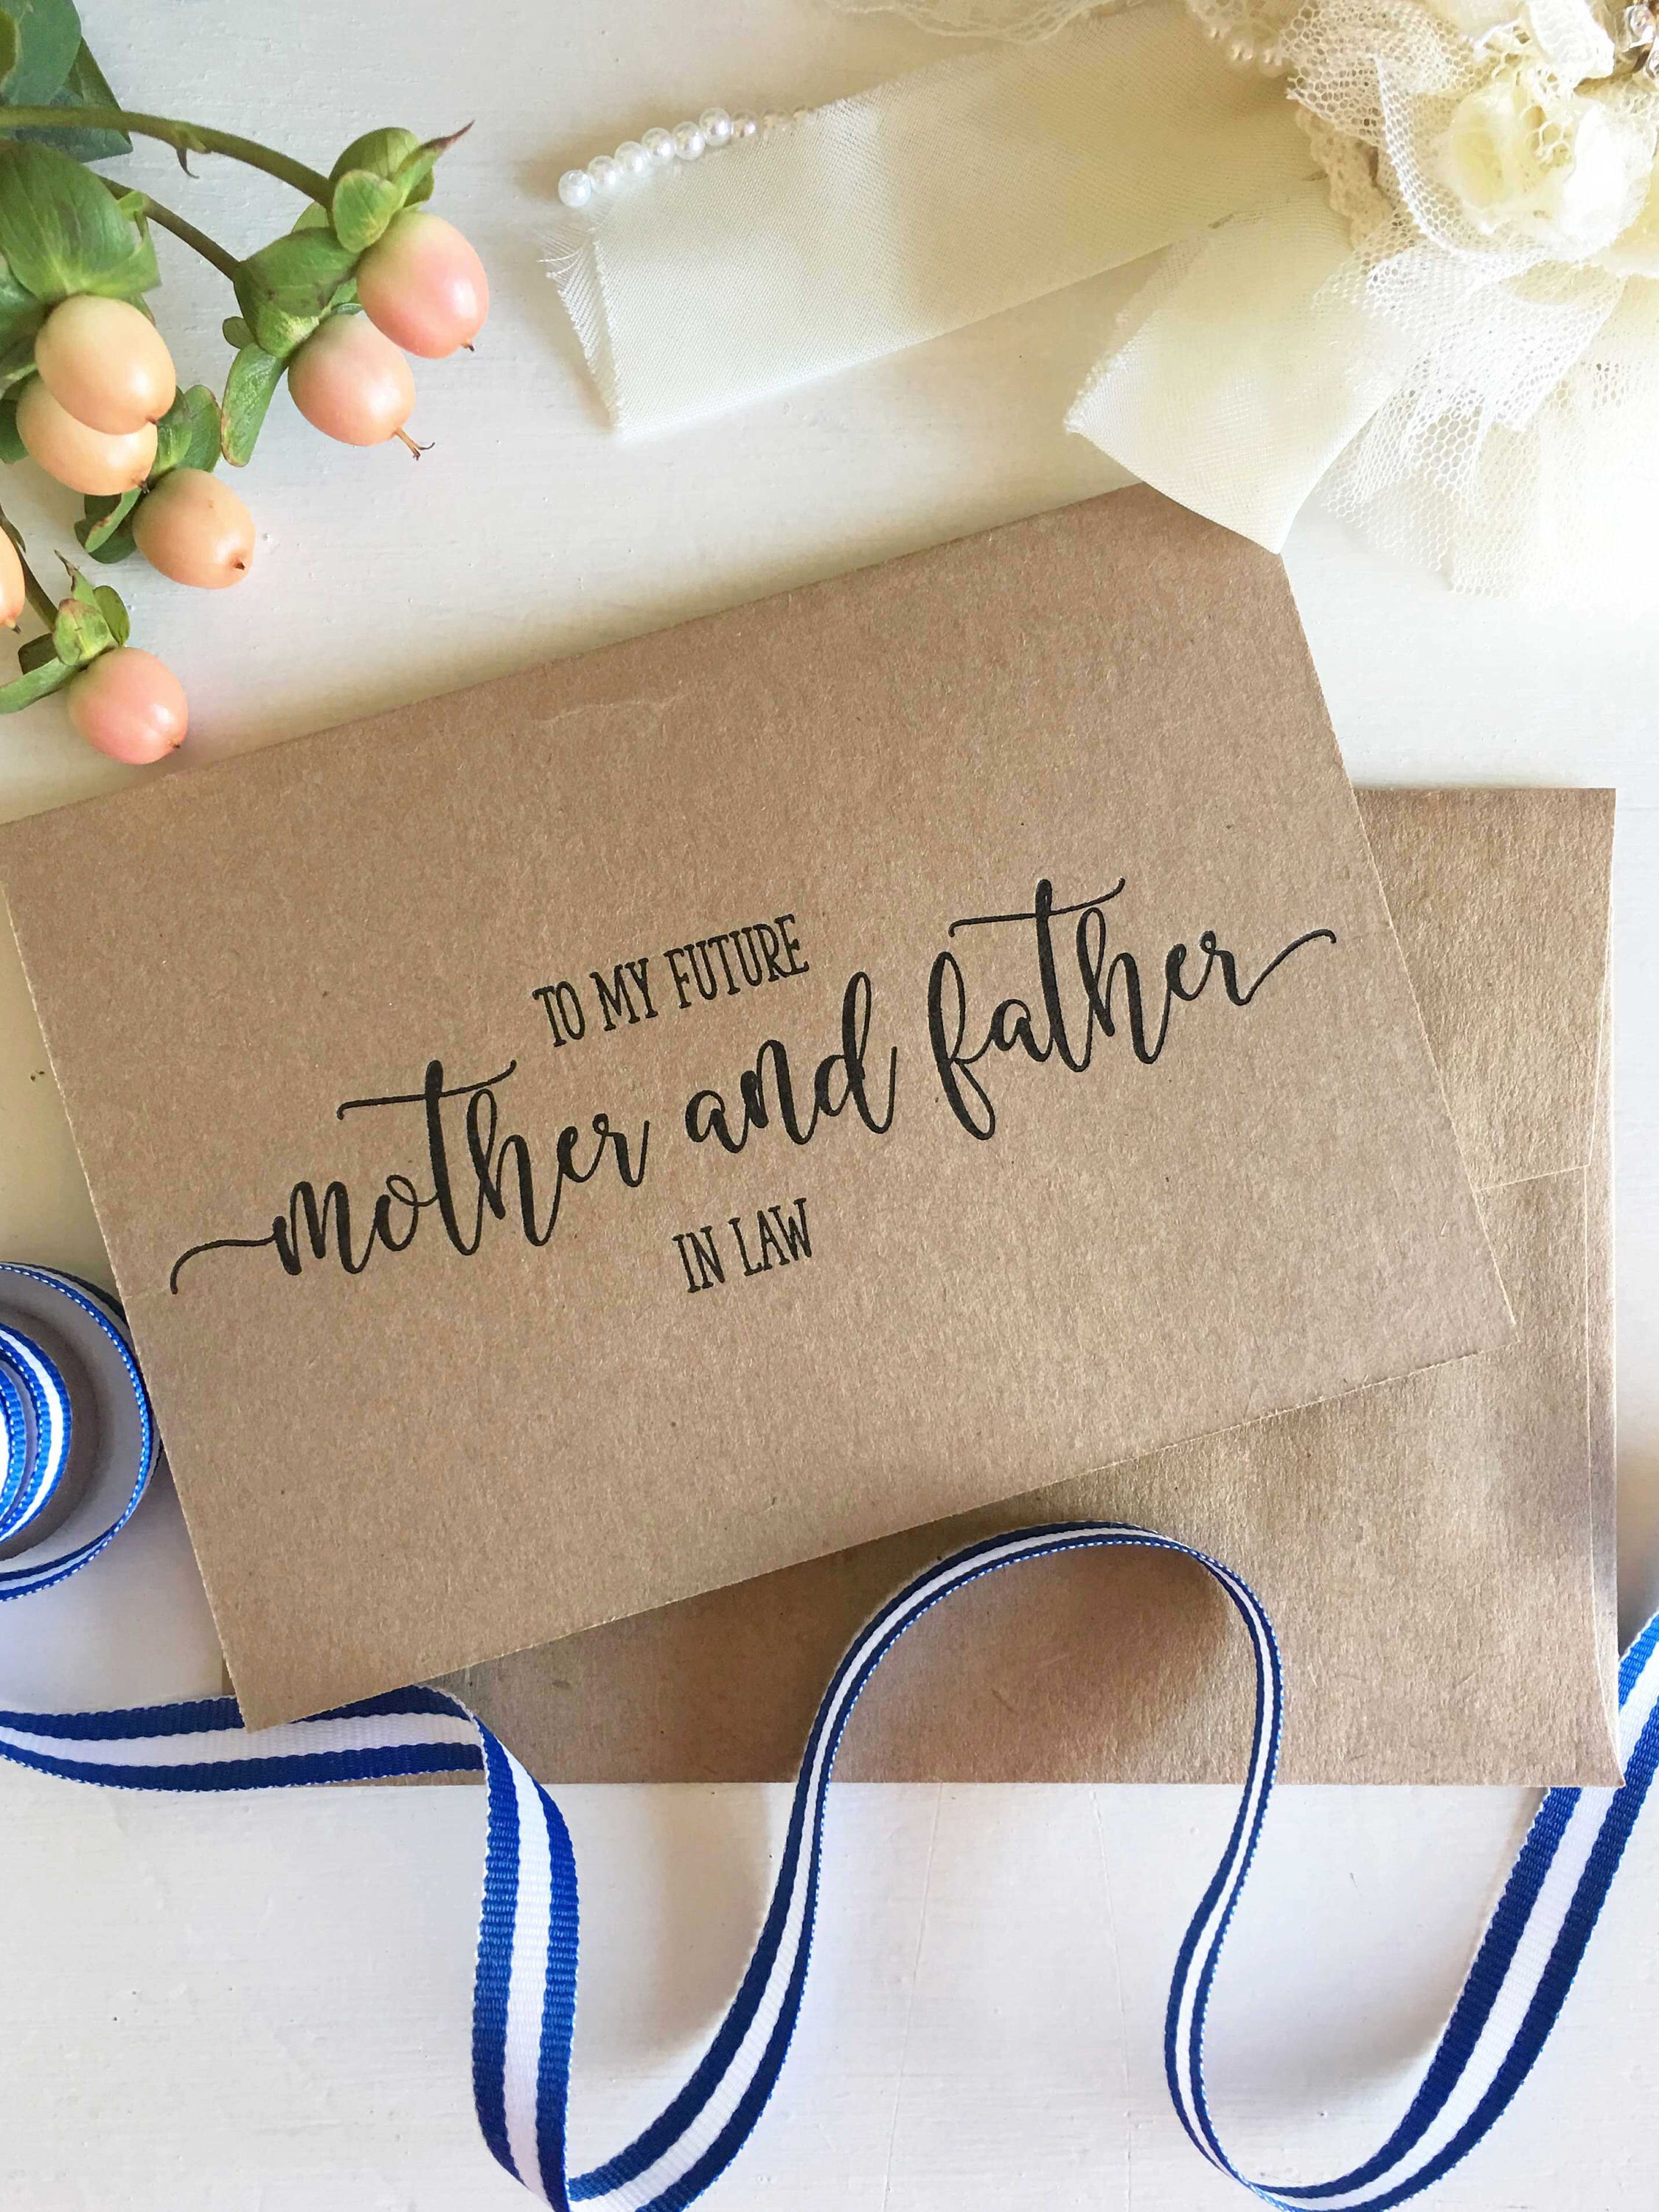 To My Parents In Law On My Wedding Day Card To My Future Parents In Law Mother In Law Card Wedding Parent Gift Mother And Father In Law Wedding Gifts For